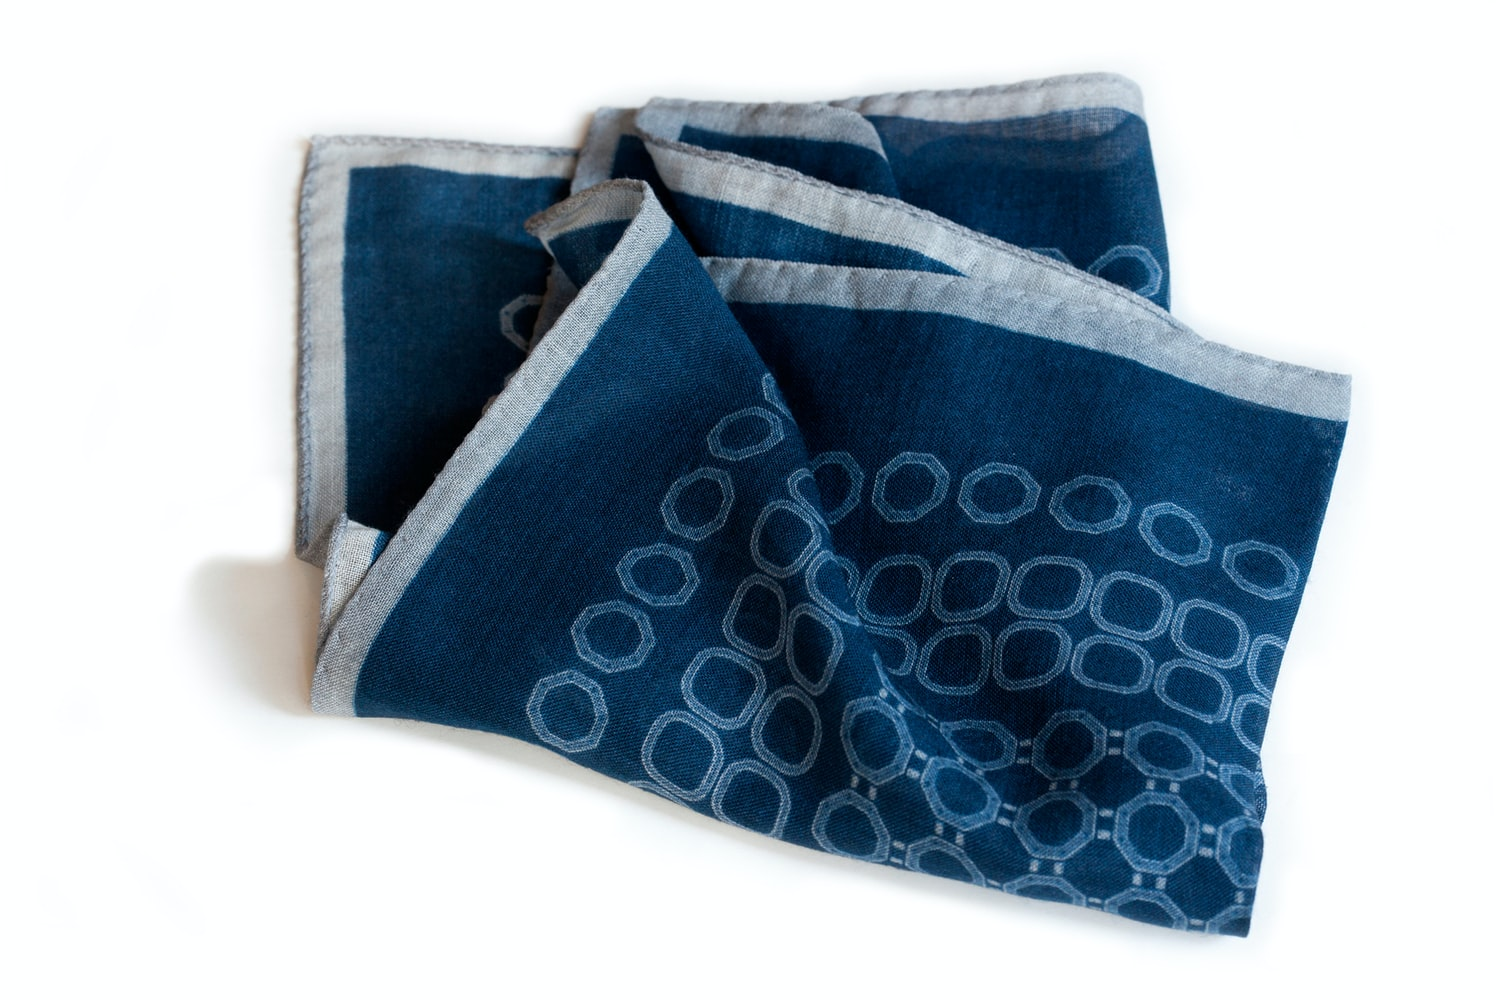 2014: The first edition of the Genta Pocket Square. Introducing: The Drake's For HODINKEE 2016 Limited Edition Genta Pocket Square Introducing: The Drake's For HODINKEE 2016 Limited Edition Genta Pocket Square a